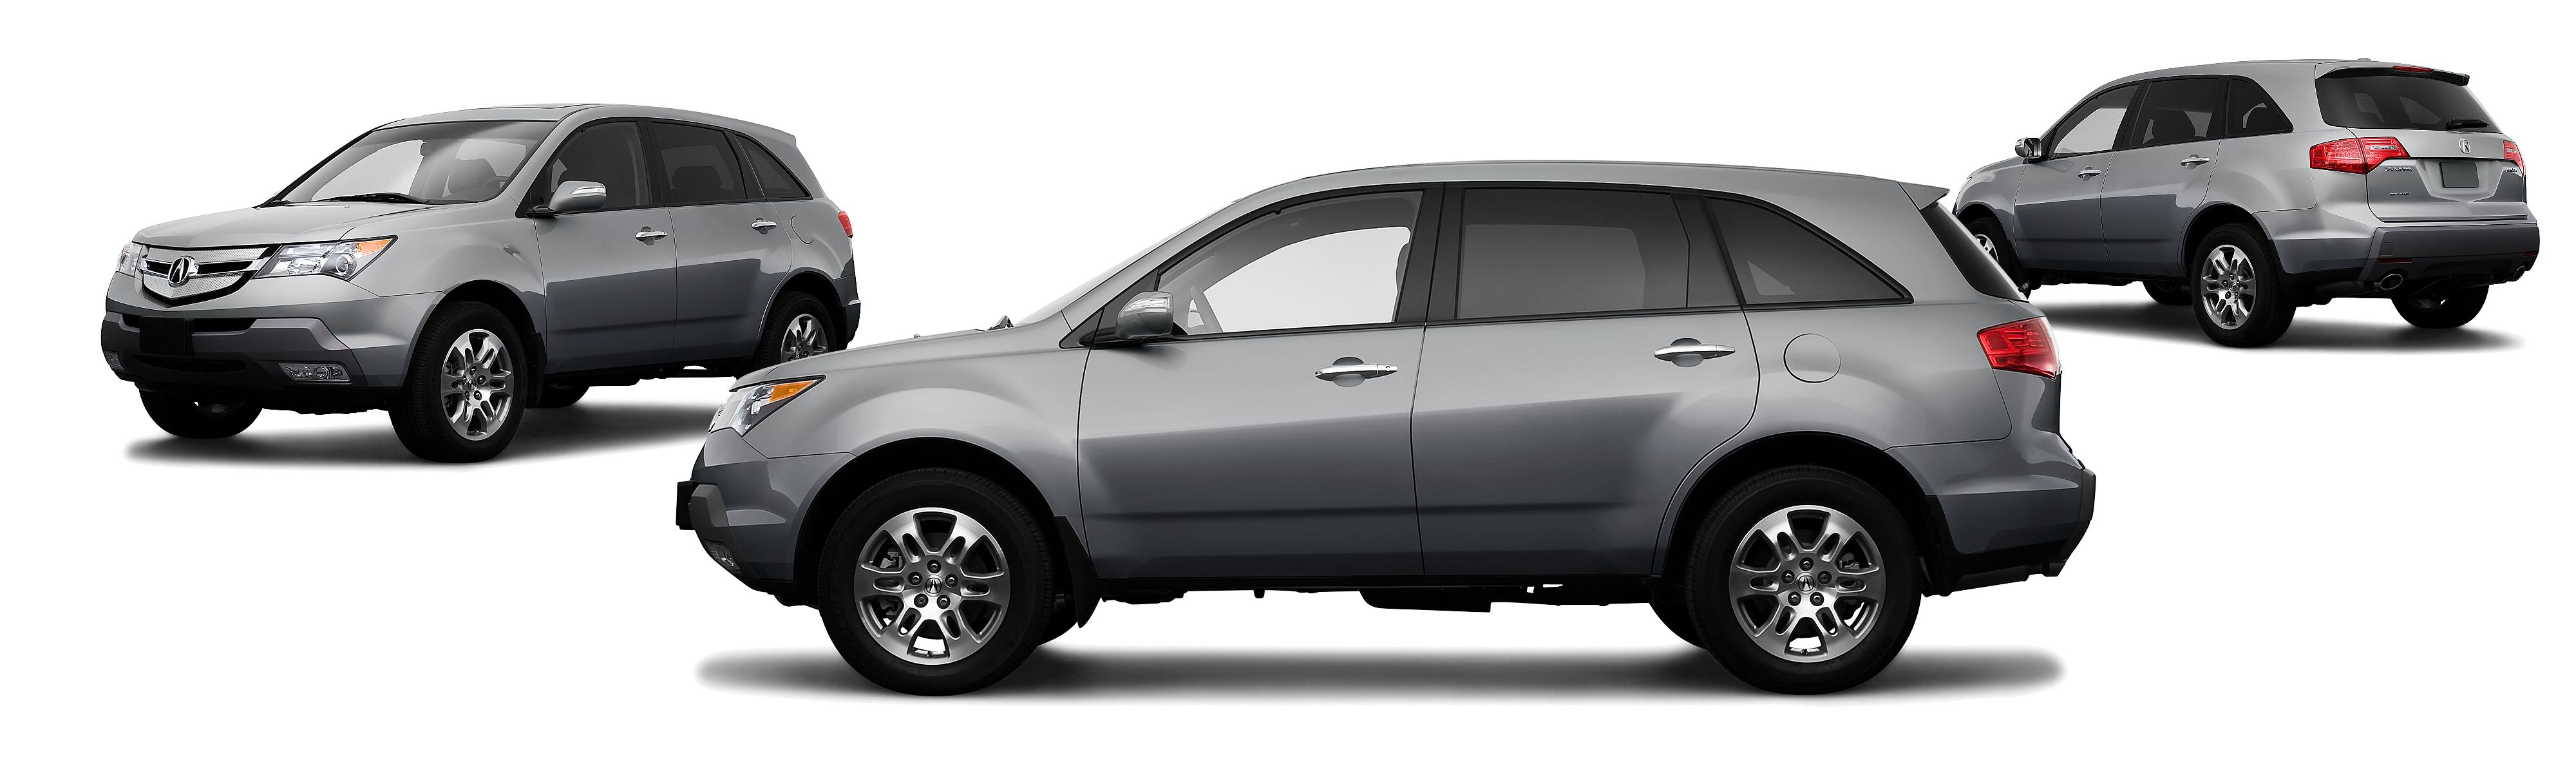 2009 acura mdx sh awd 4dr suv research groovecar